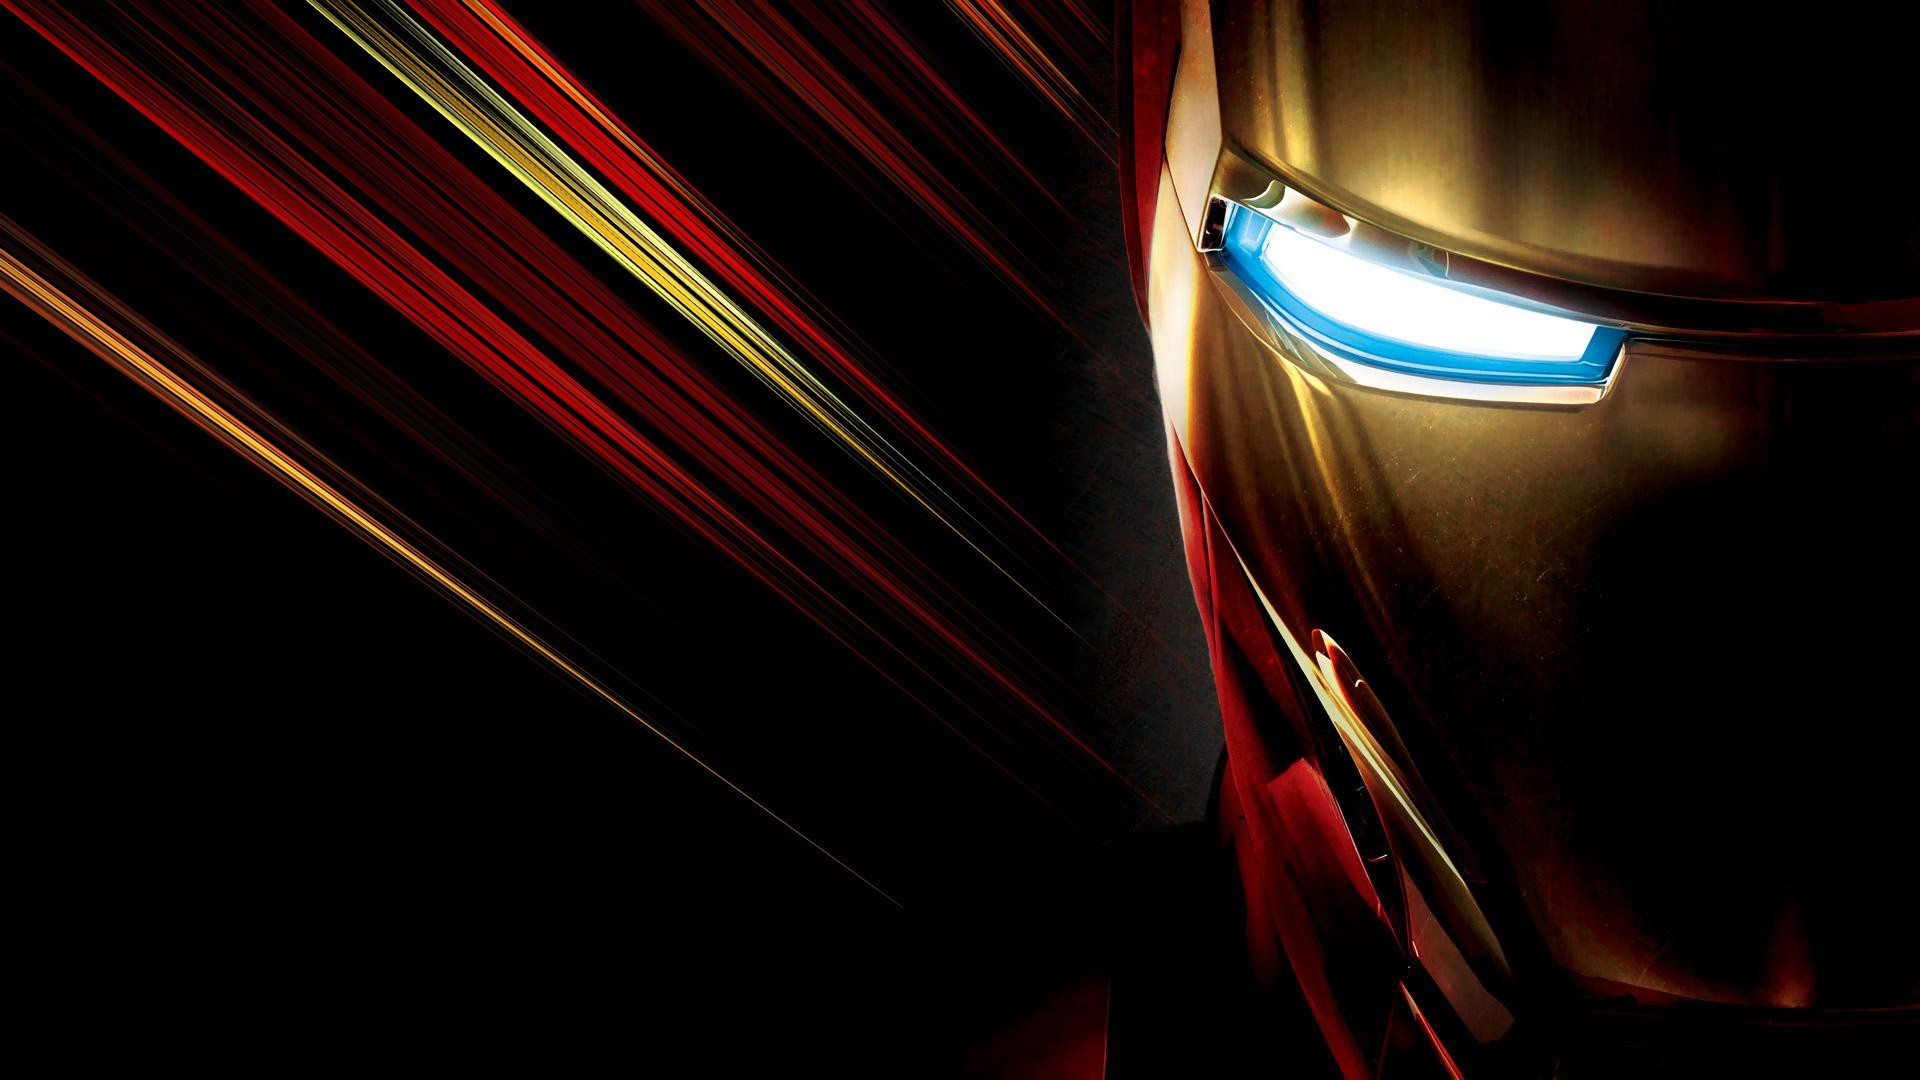 21 Hd Iron Man Wallpapers